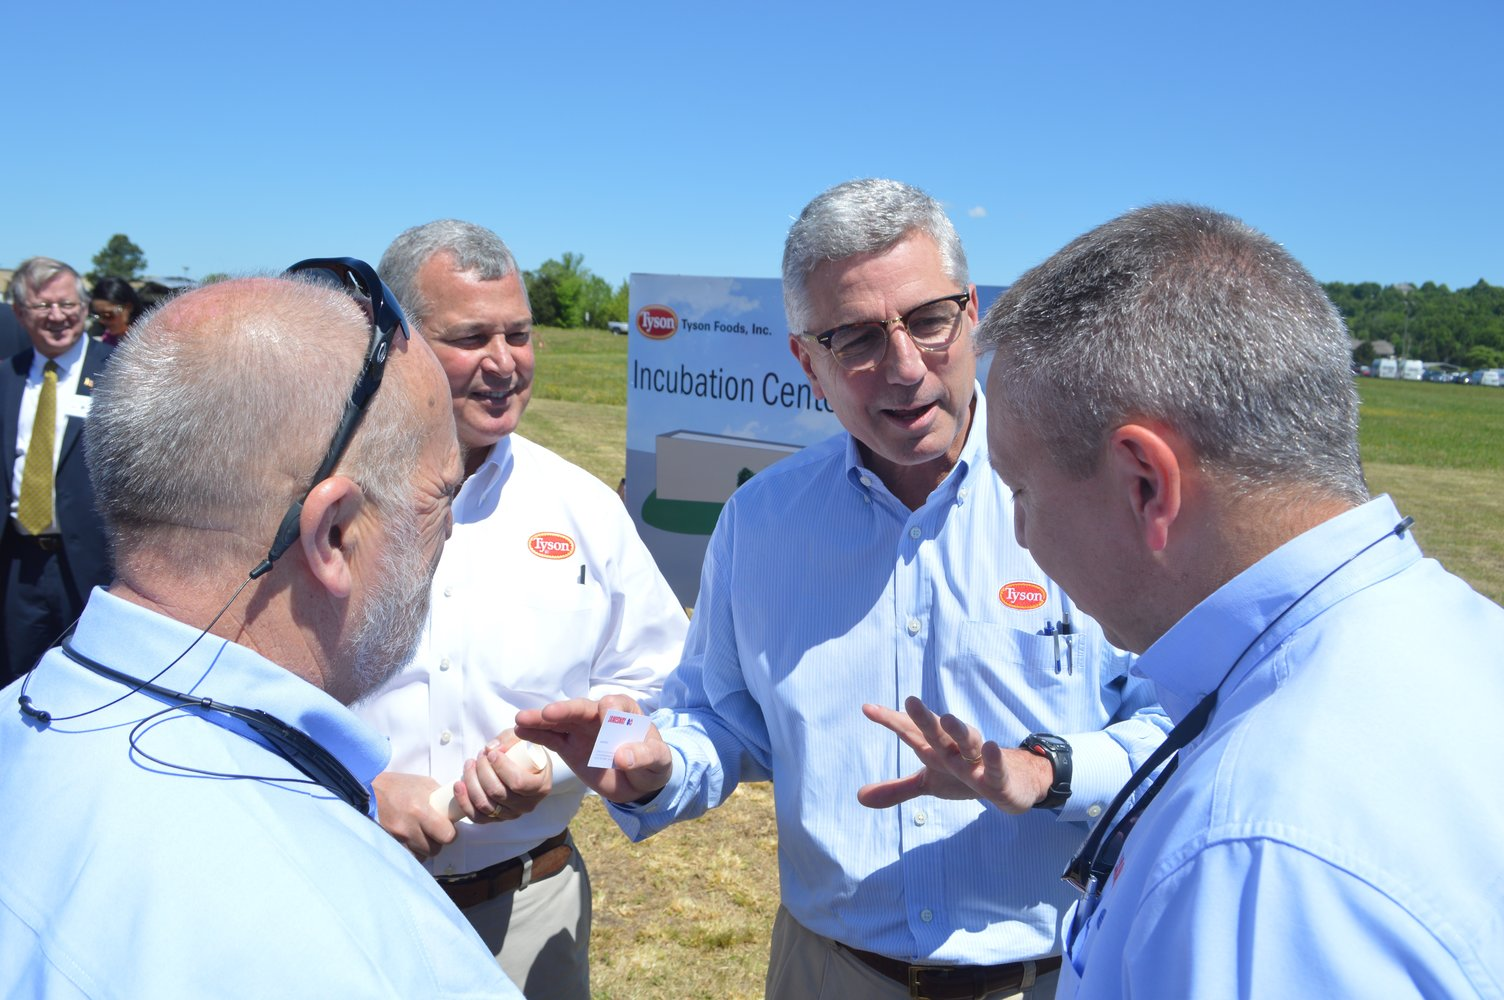 Tyson Foods President and CEO Donnie Smith talks with Noel White, the company's president of poultry, and two employees of Jamesway, a company that will be involved in the Tyson Foods Incubator Center project in Springdale. Tyson Foods earlier today held a ground breaking ceremony to kick off the center's construction.